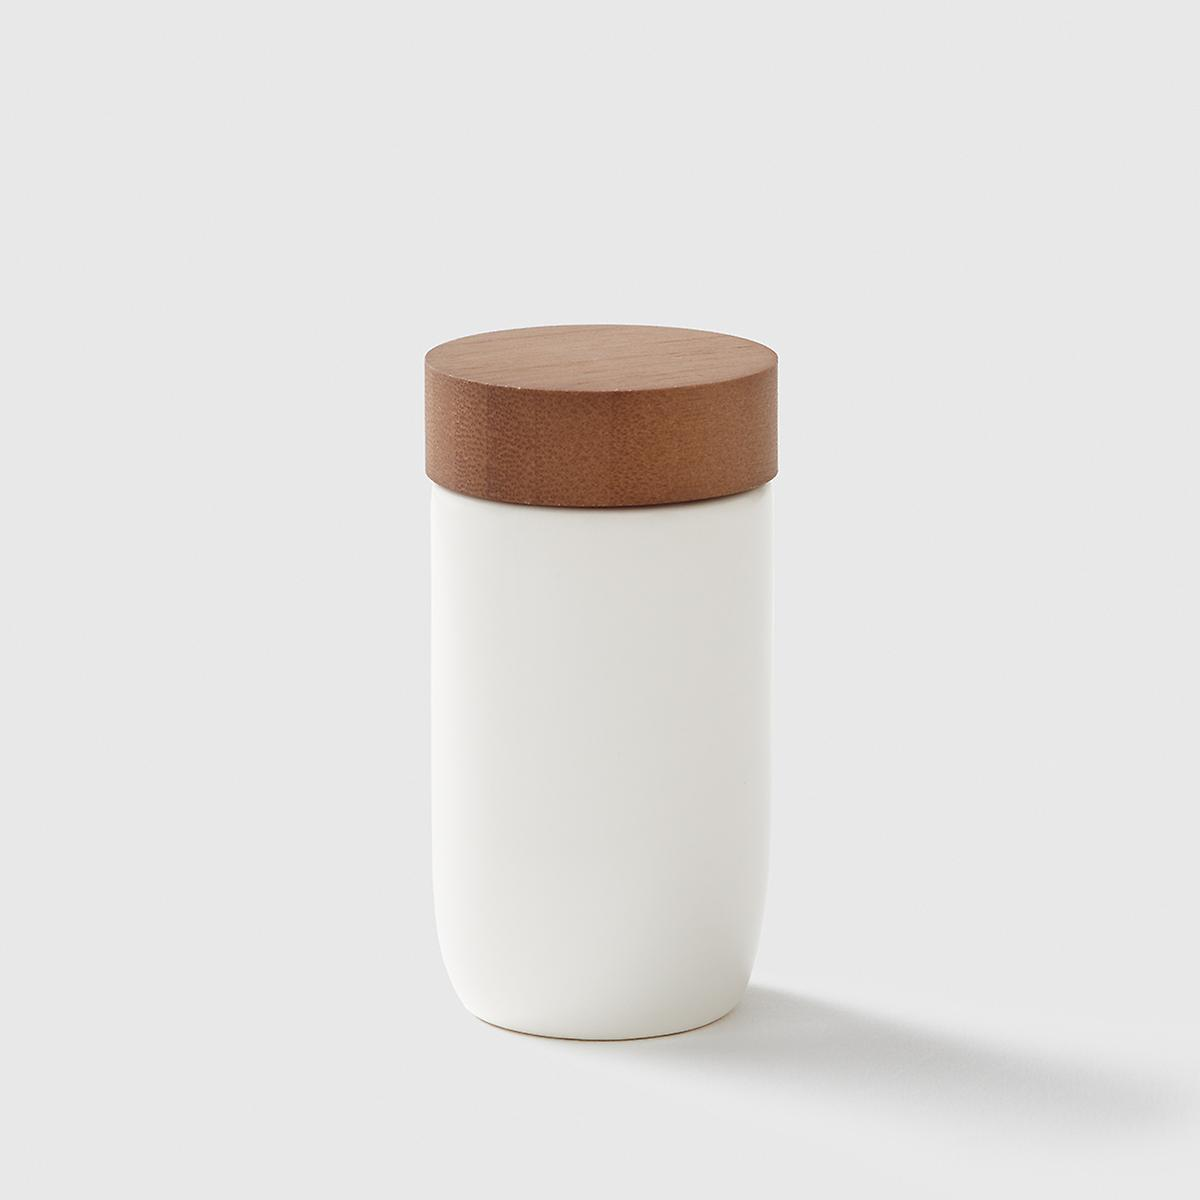 Marie Kondo Cloud White Ceramic Spice Jar with Bamboo Lid